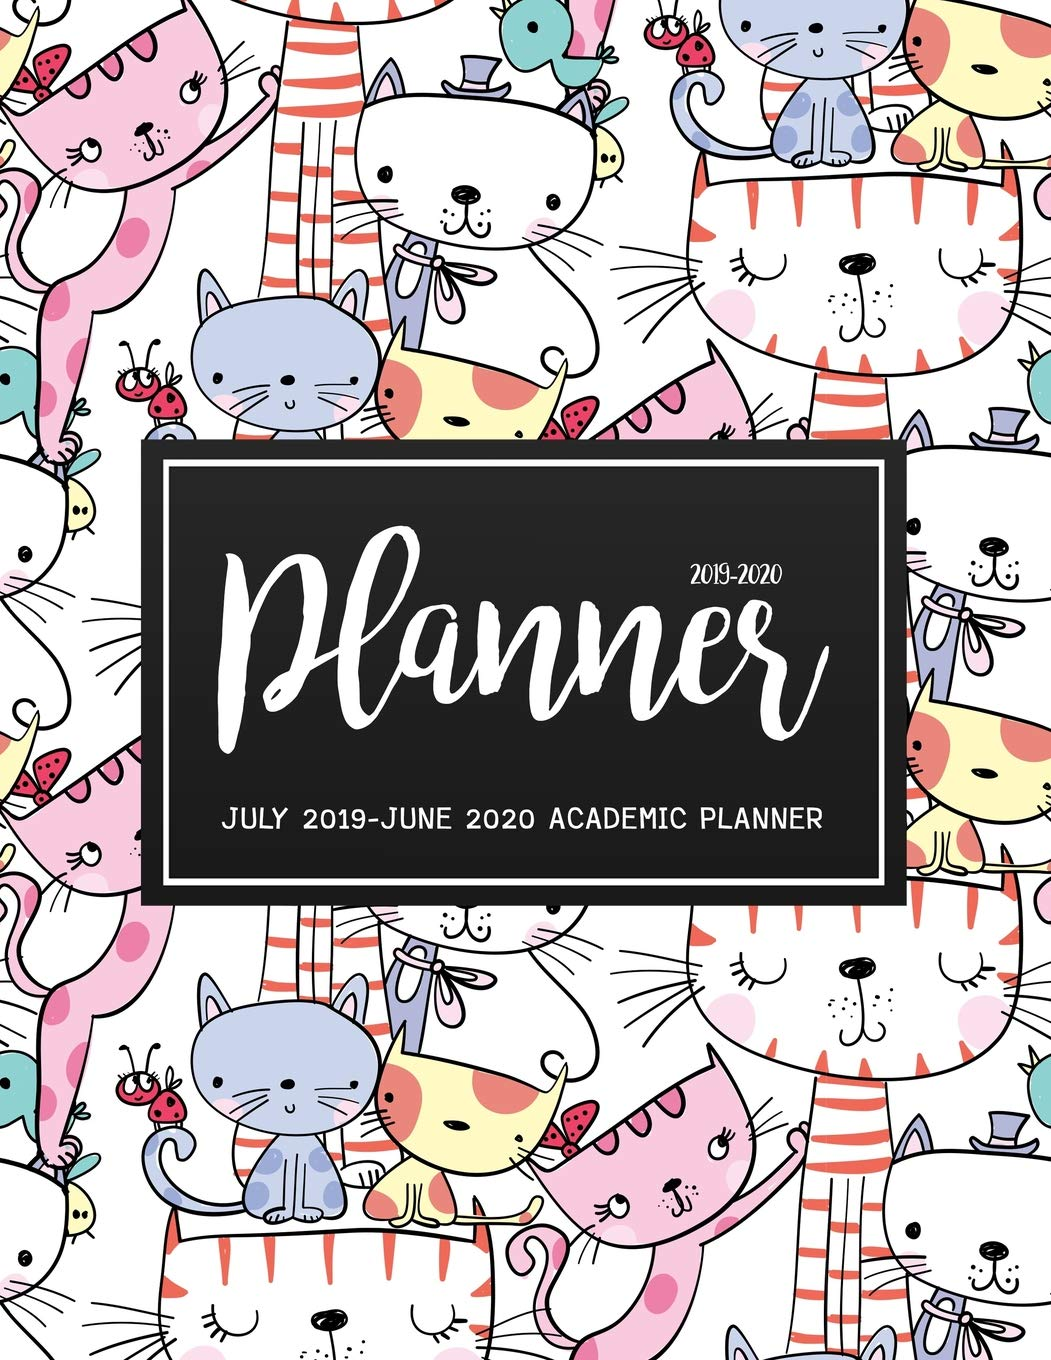 Calendar Clip Art February 2020 July 2019 June 2020 Academic Planner: Two Year   Daily Weekly